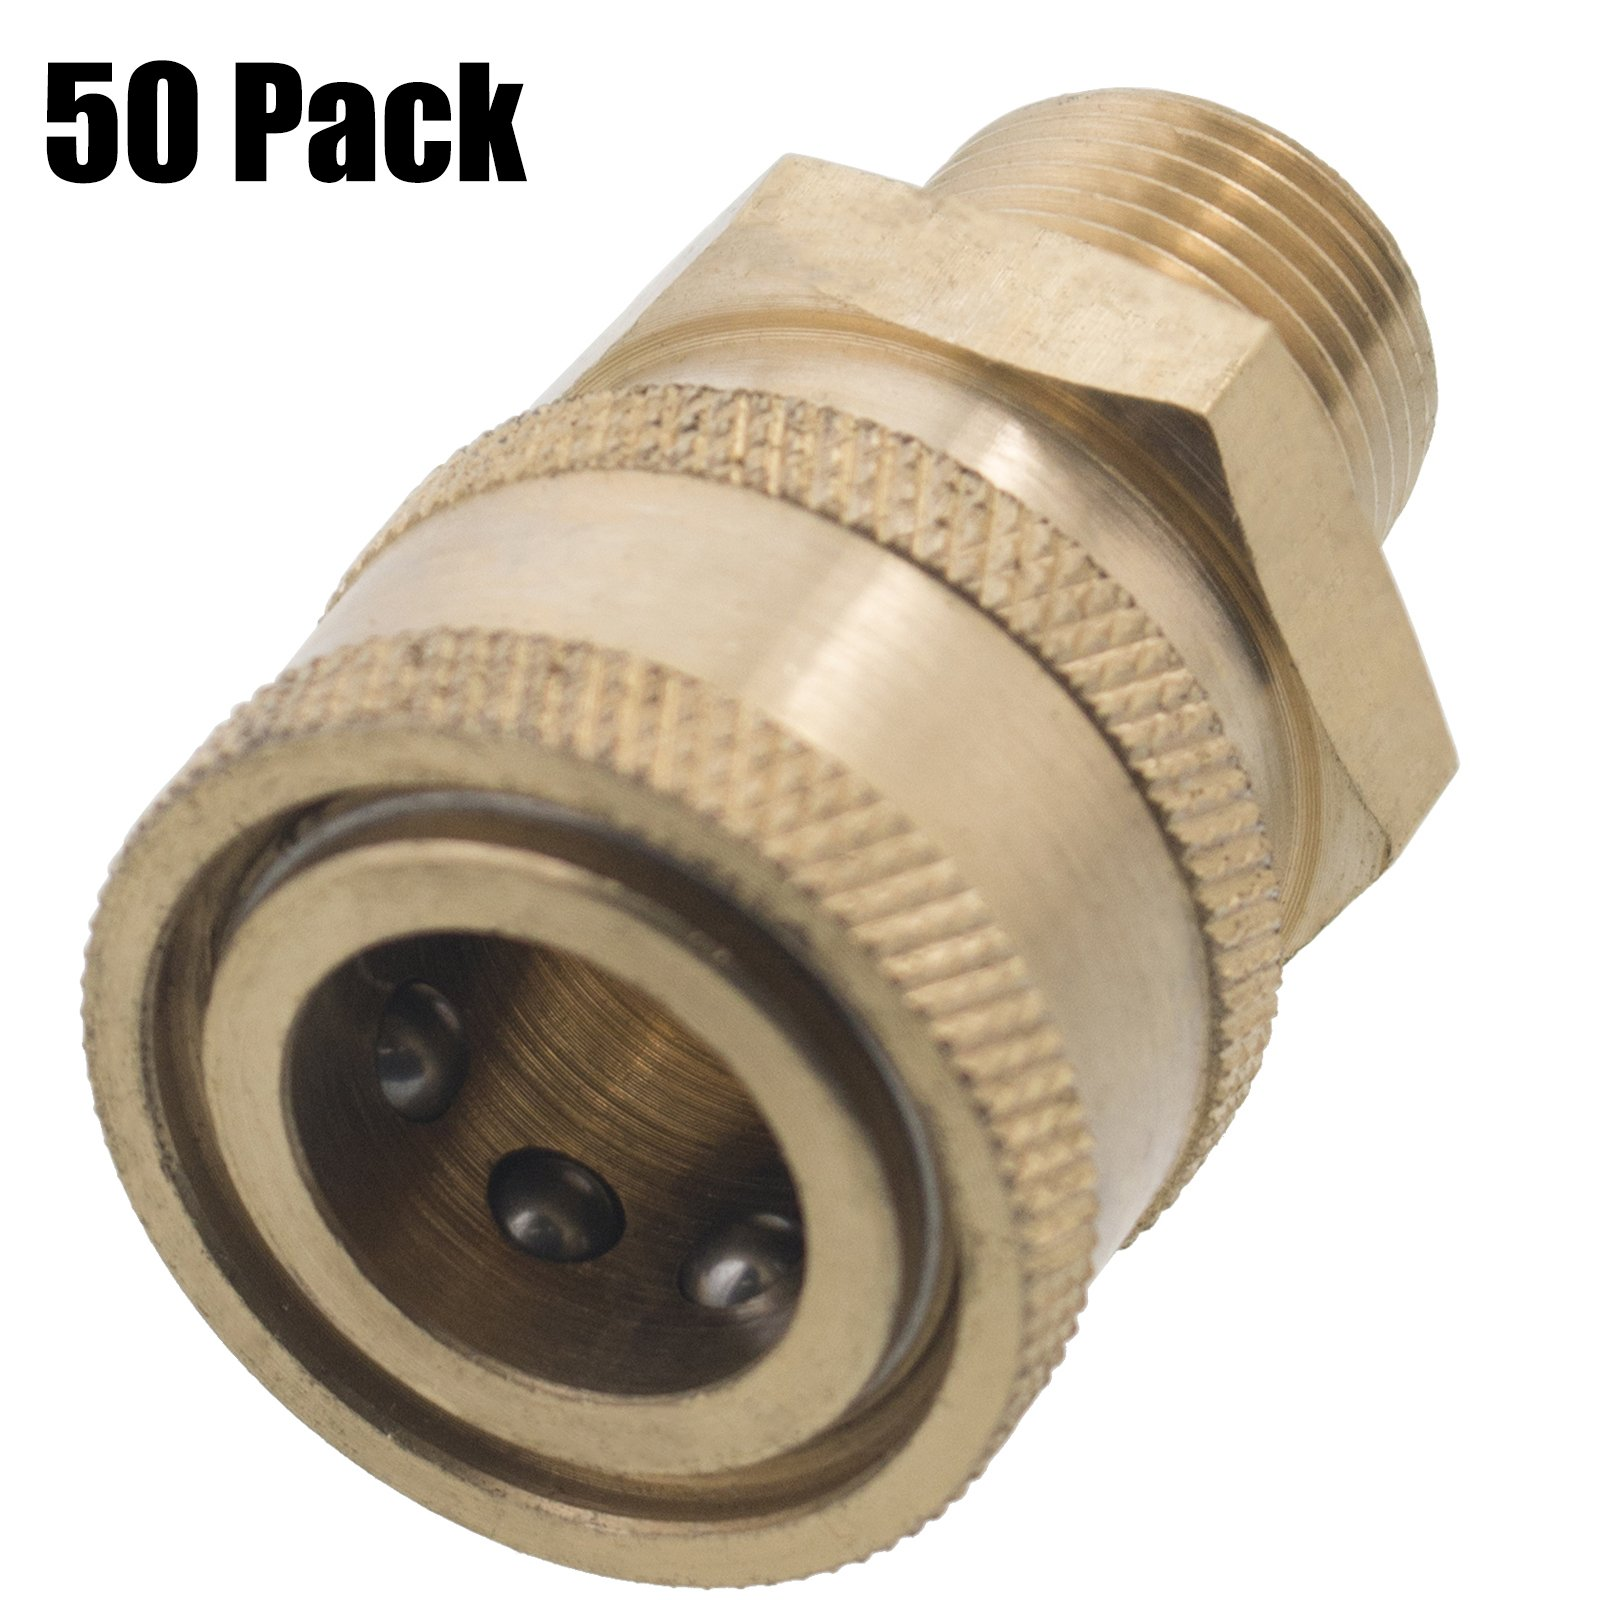 Erie Tools 50 3/8in. MPT Male Brass Socket Quick Connect Coupler 4000 PSI 10 GPM for Pressure Washer Nozzle Gun Hose Wand